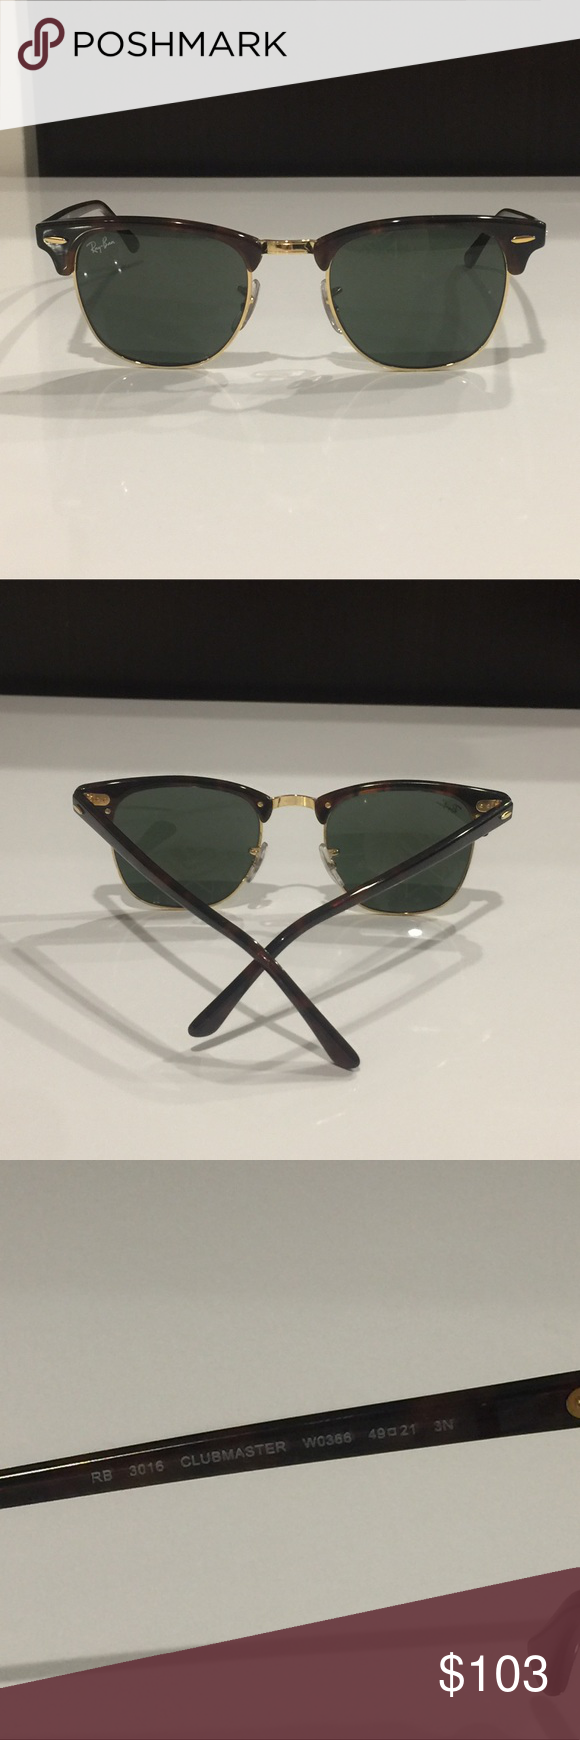 "Ray-ban ""clubmaster"" sunglasses 